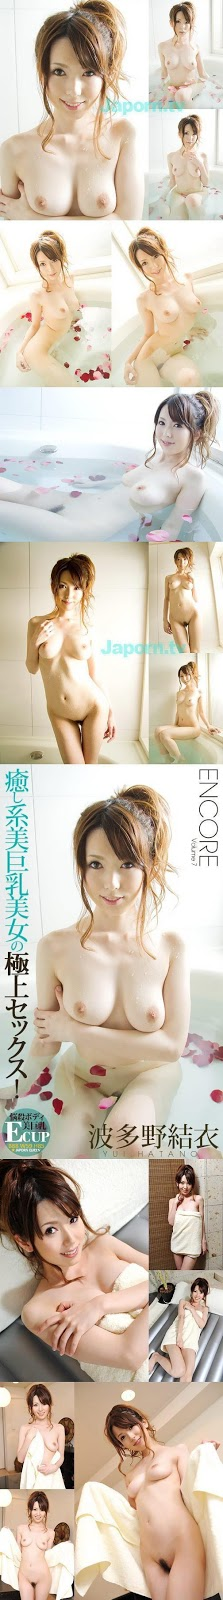 Encore Vol. 7 – Yui Hatano (S2MBD-007) (Blu-Ray), Taiwan Celebrity Sex Scandal, Sex-Scandal.Us, hot sex scandal, nude girls, hot girls, Best Girl, Singapore Scandal, Korean Scandal, Japan Scandal